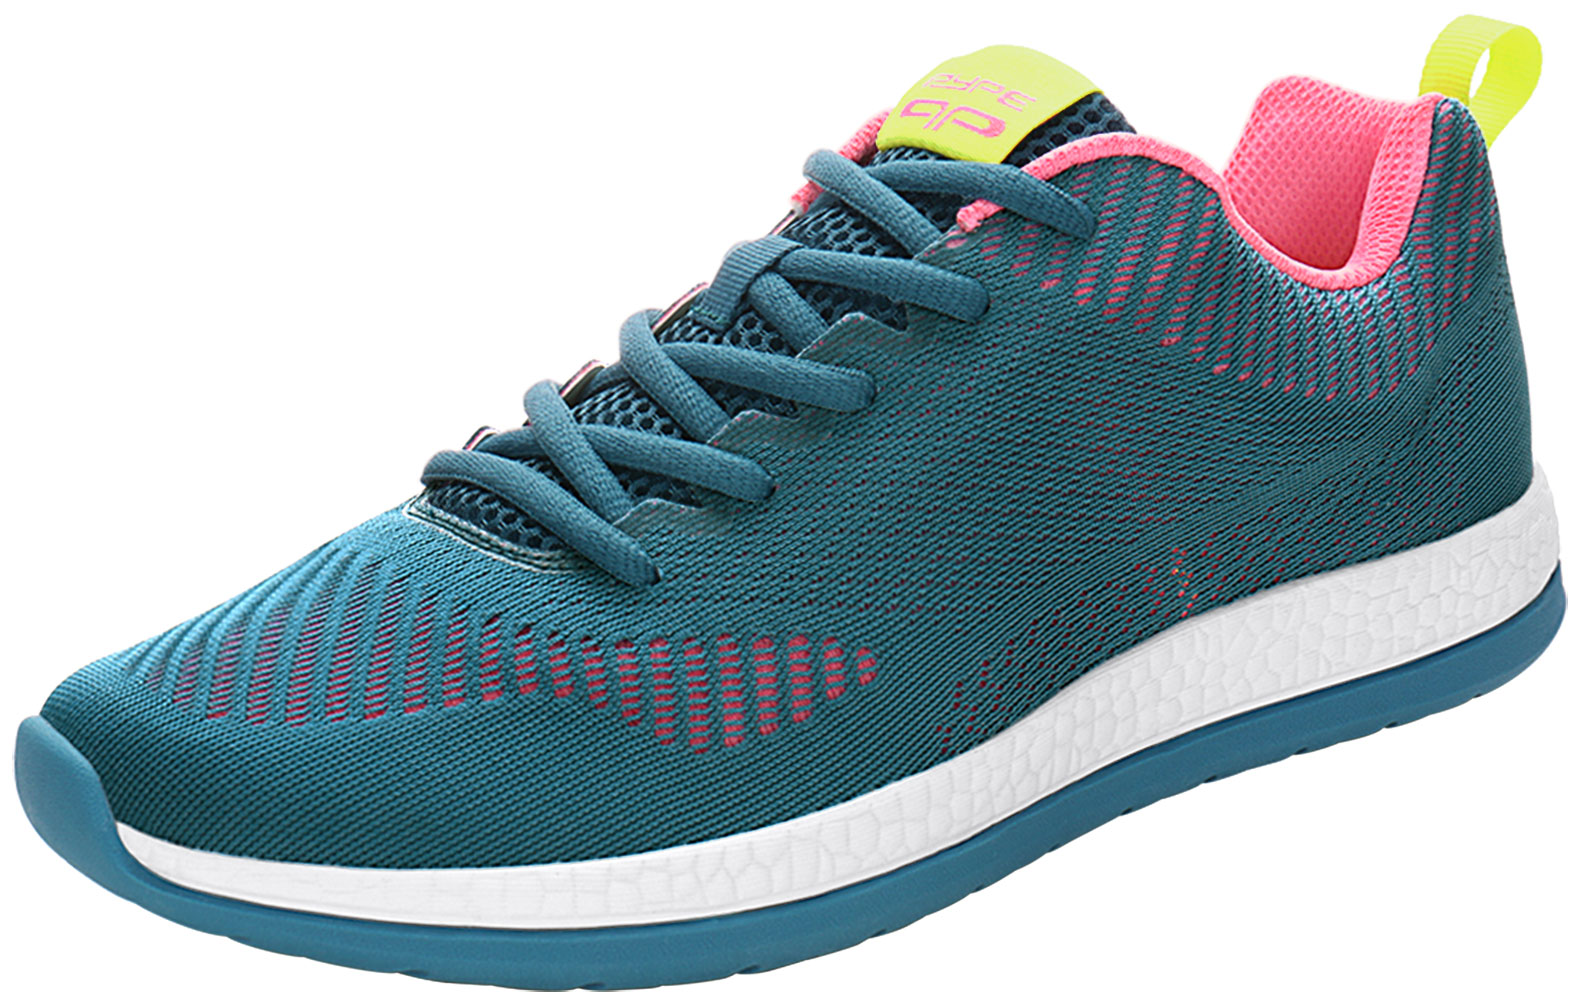 PYPE Women Mesh Contrast Color Round Toe Training Sneakers Blue US 10